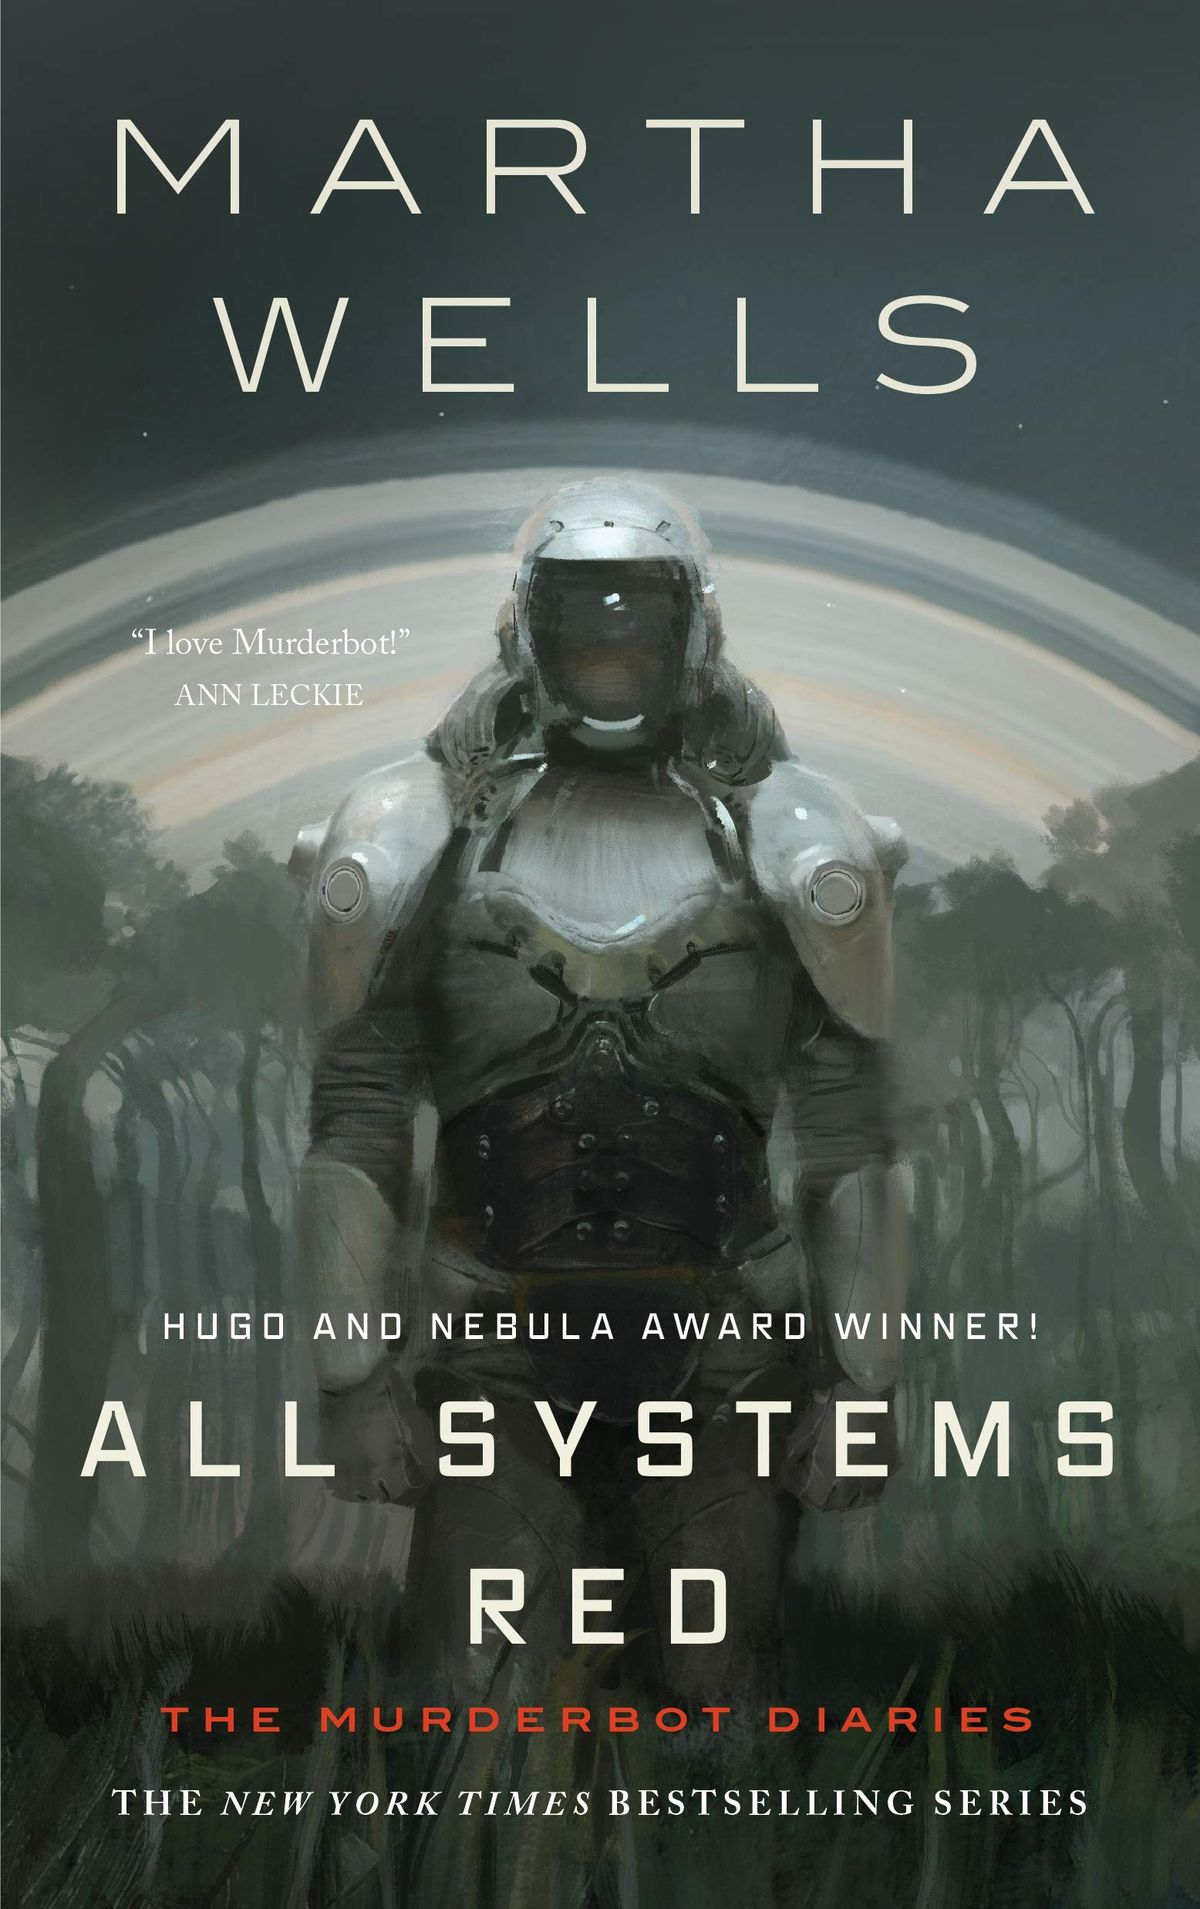 The Murderbot Diaries series by Martha Wells